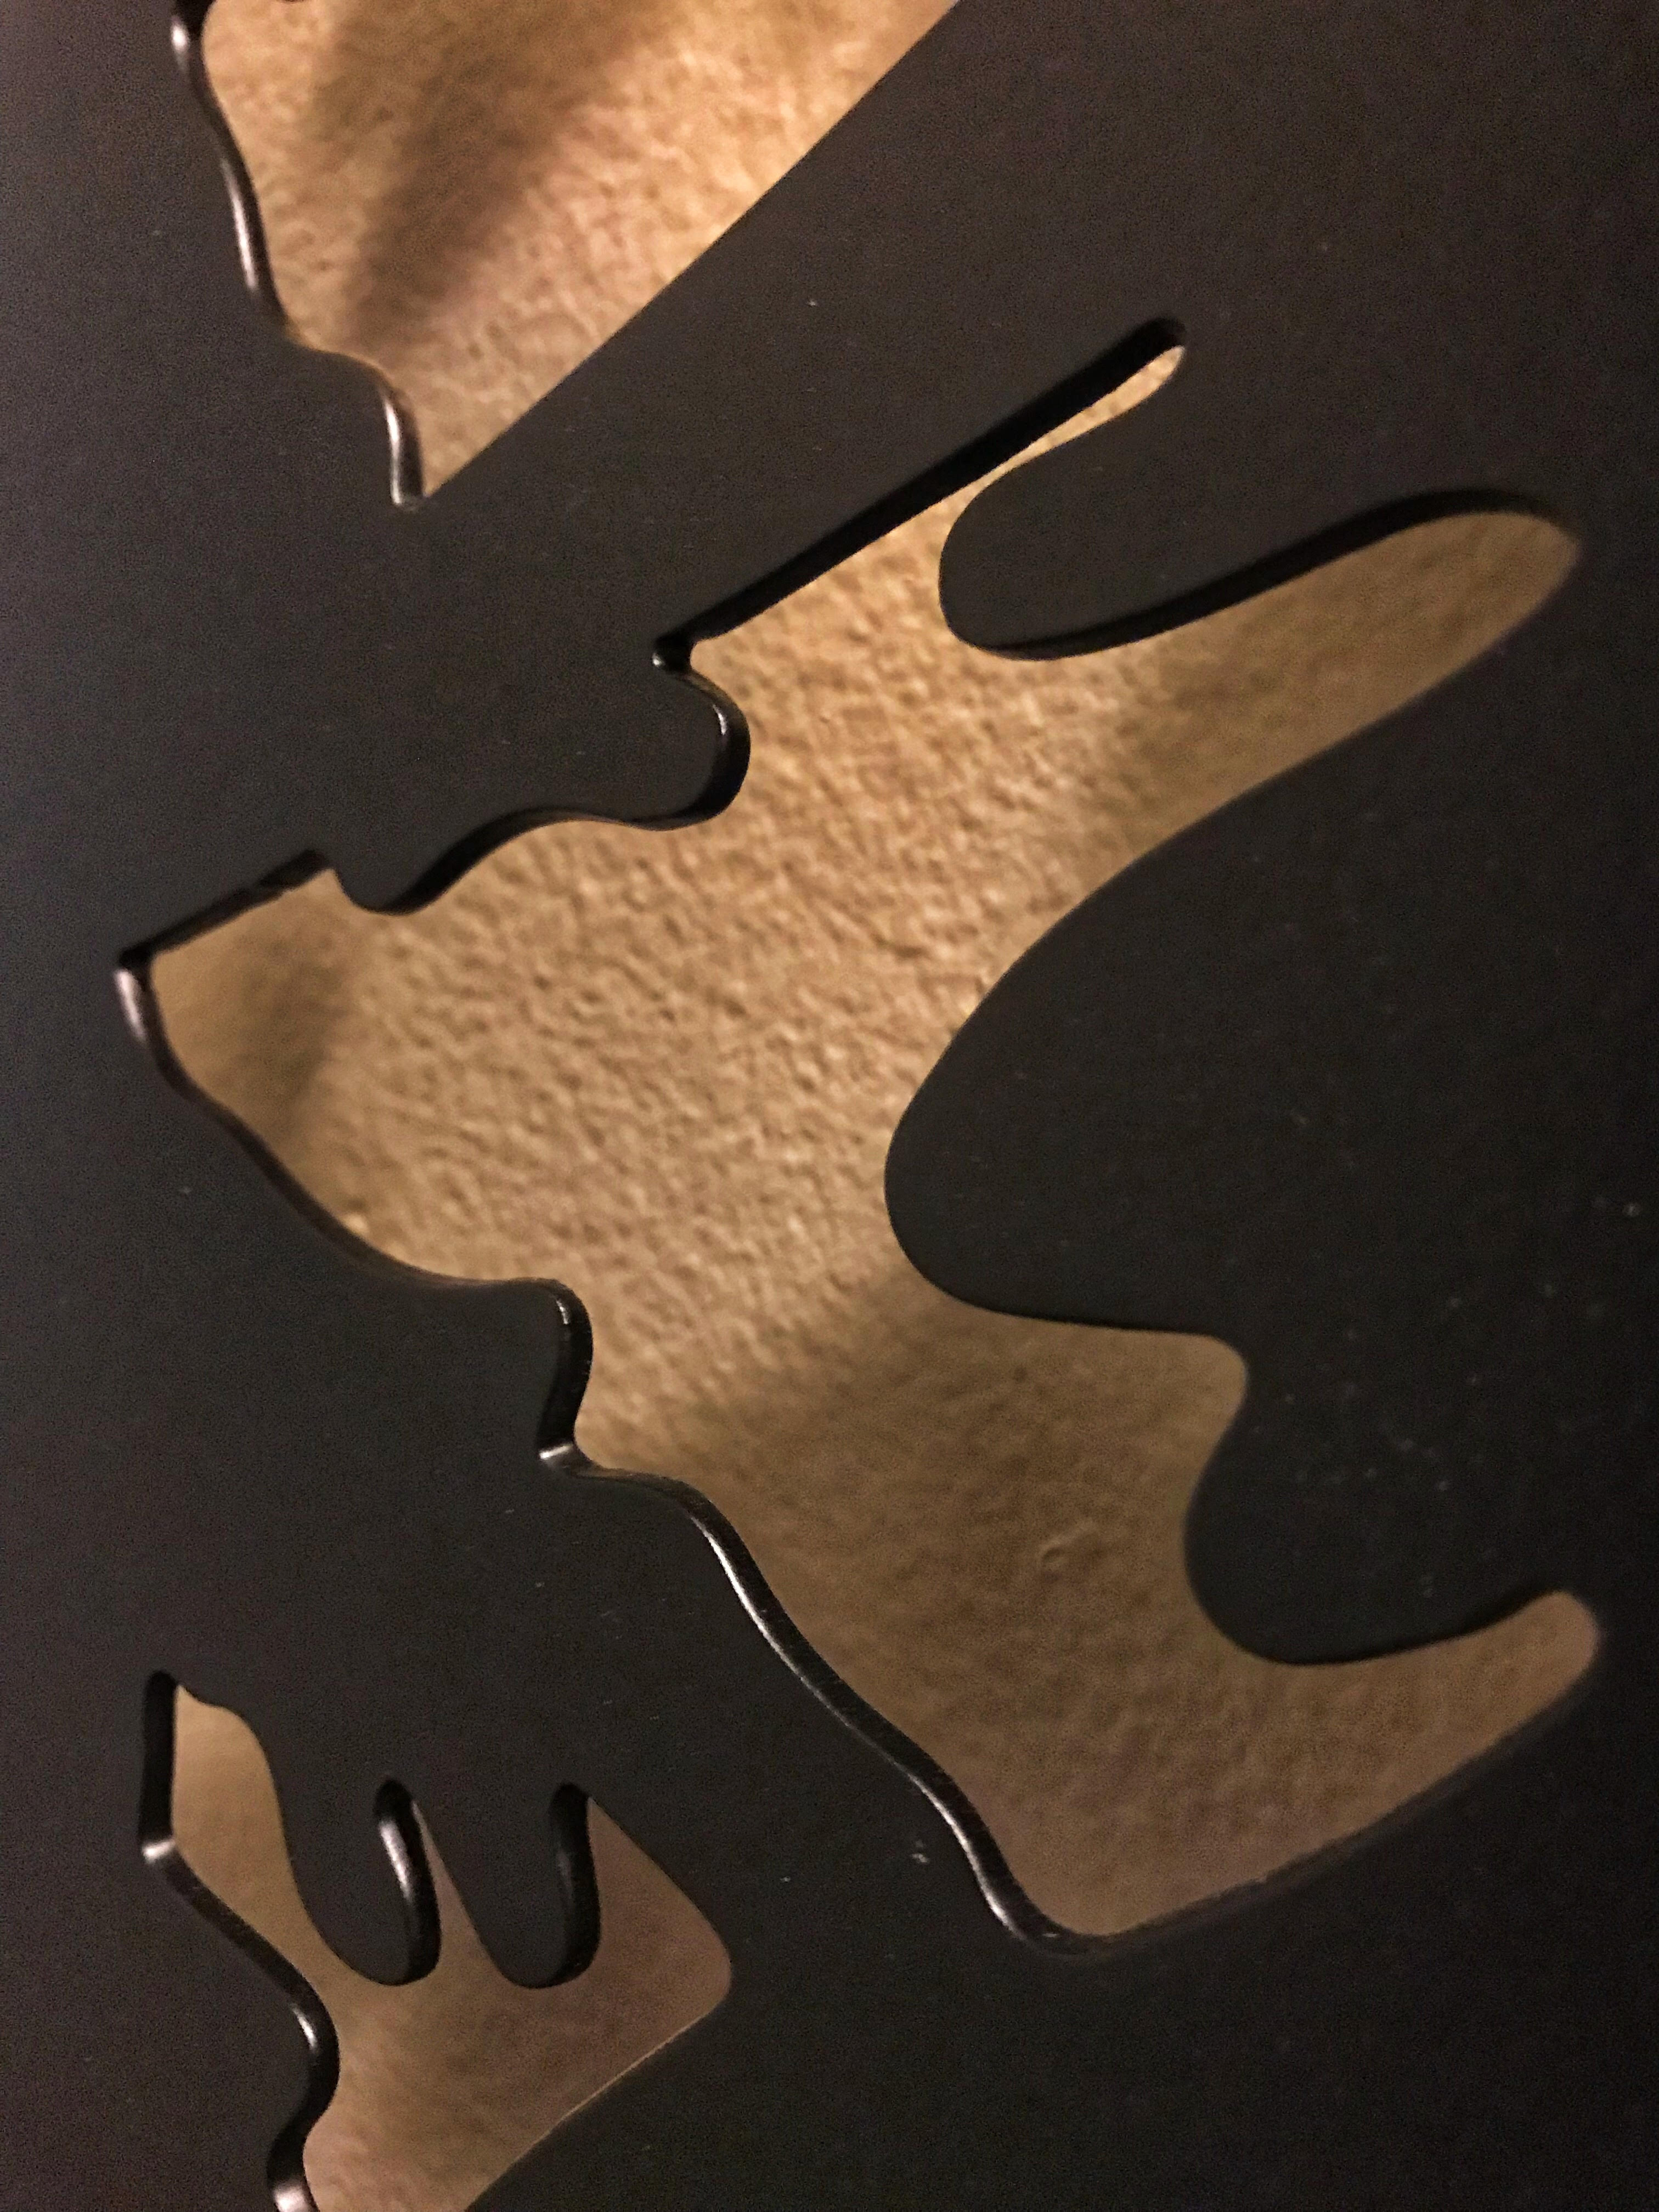 CNC Scenery Panels for Handrail-tree-edge-close-up.jpg